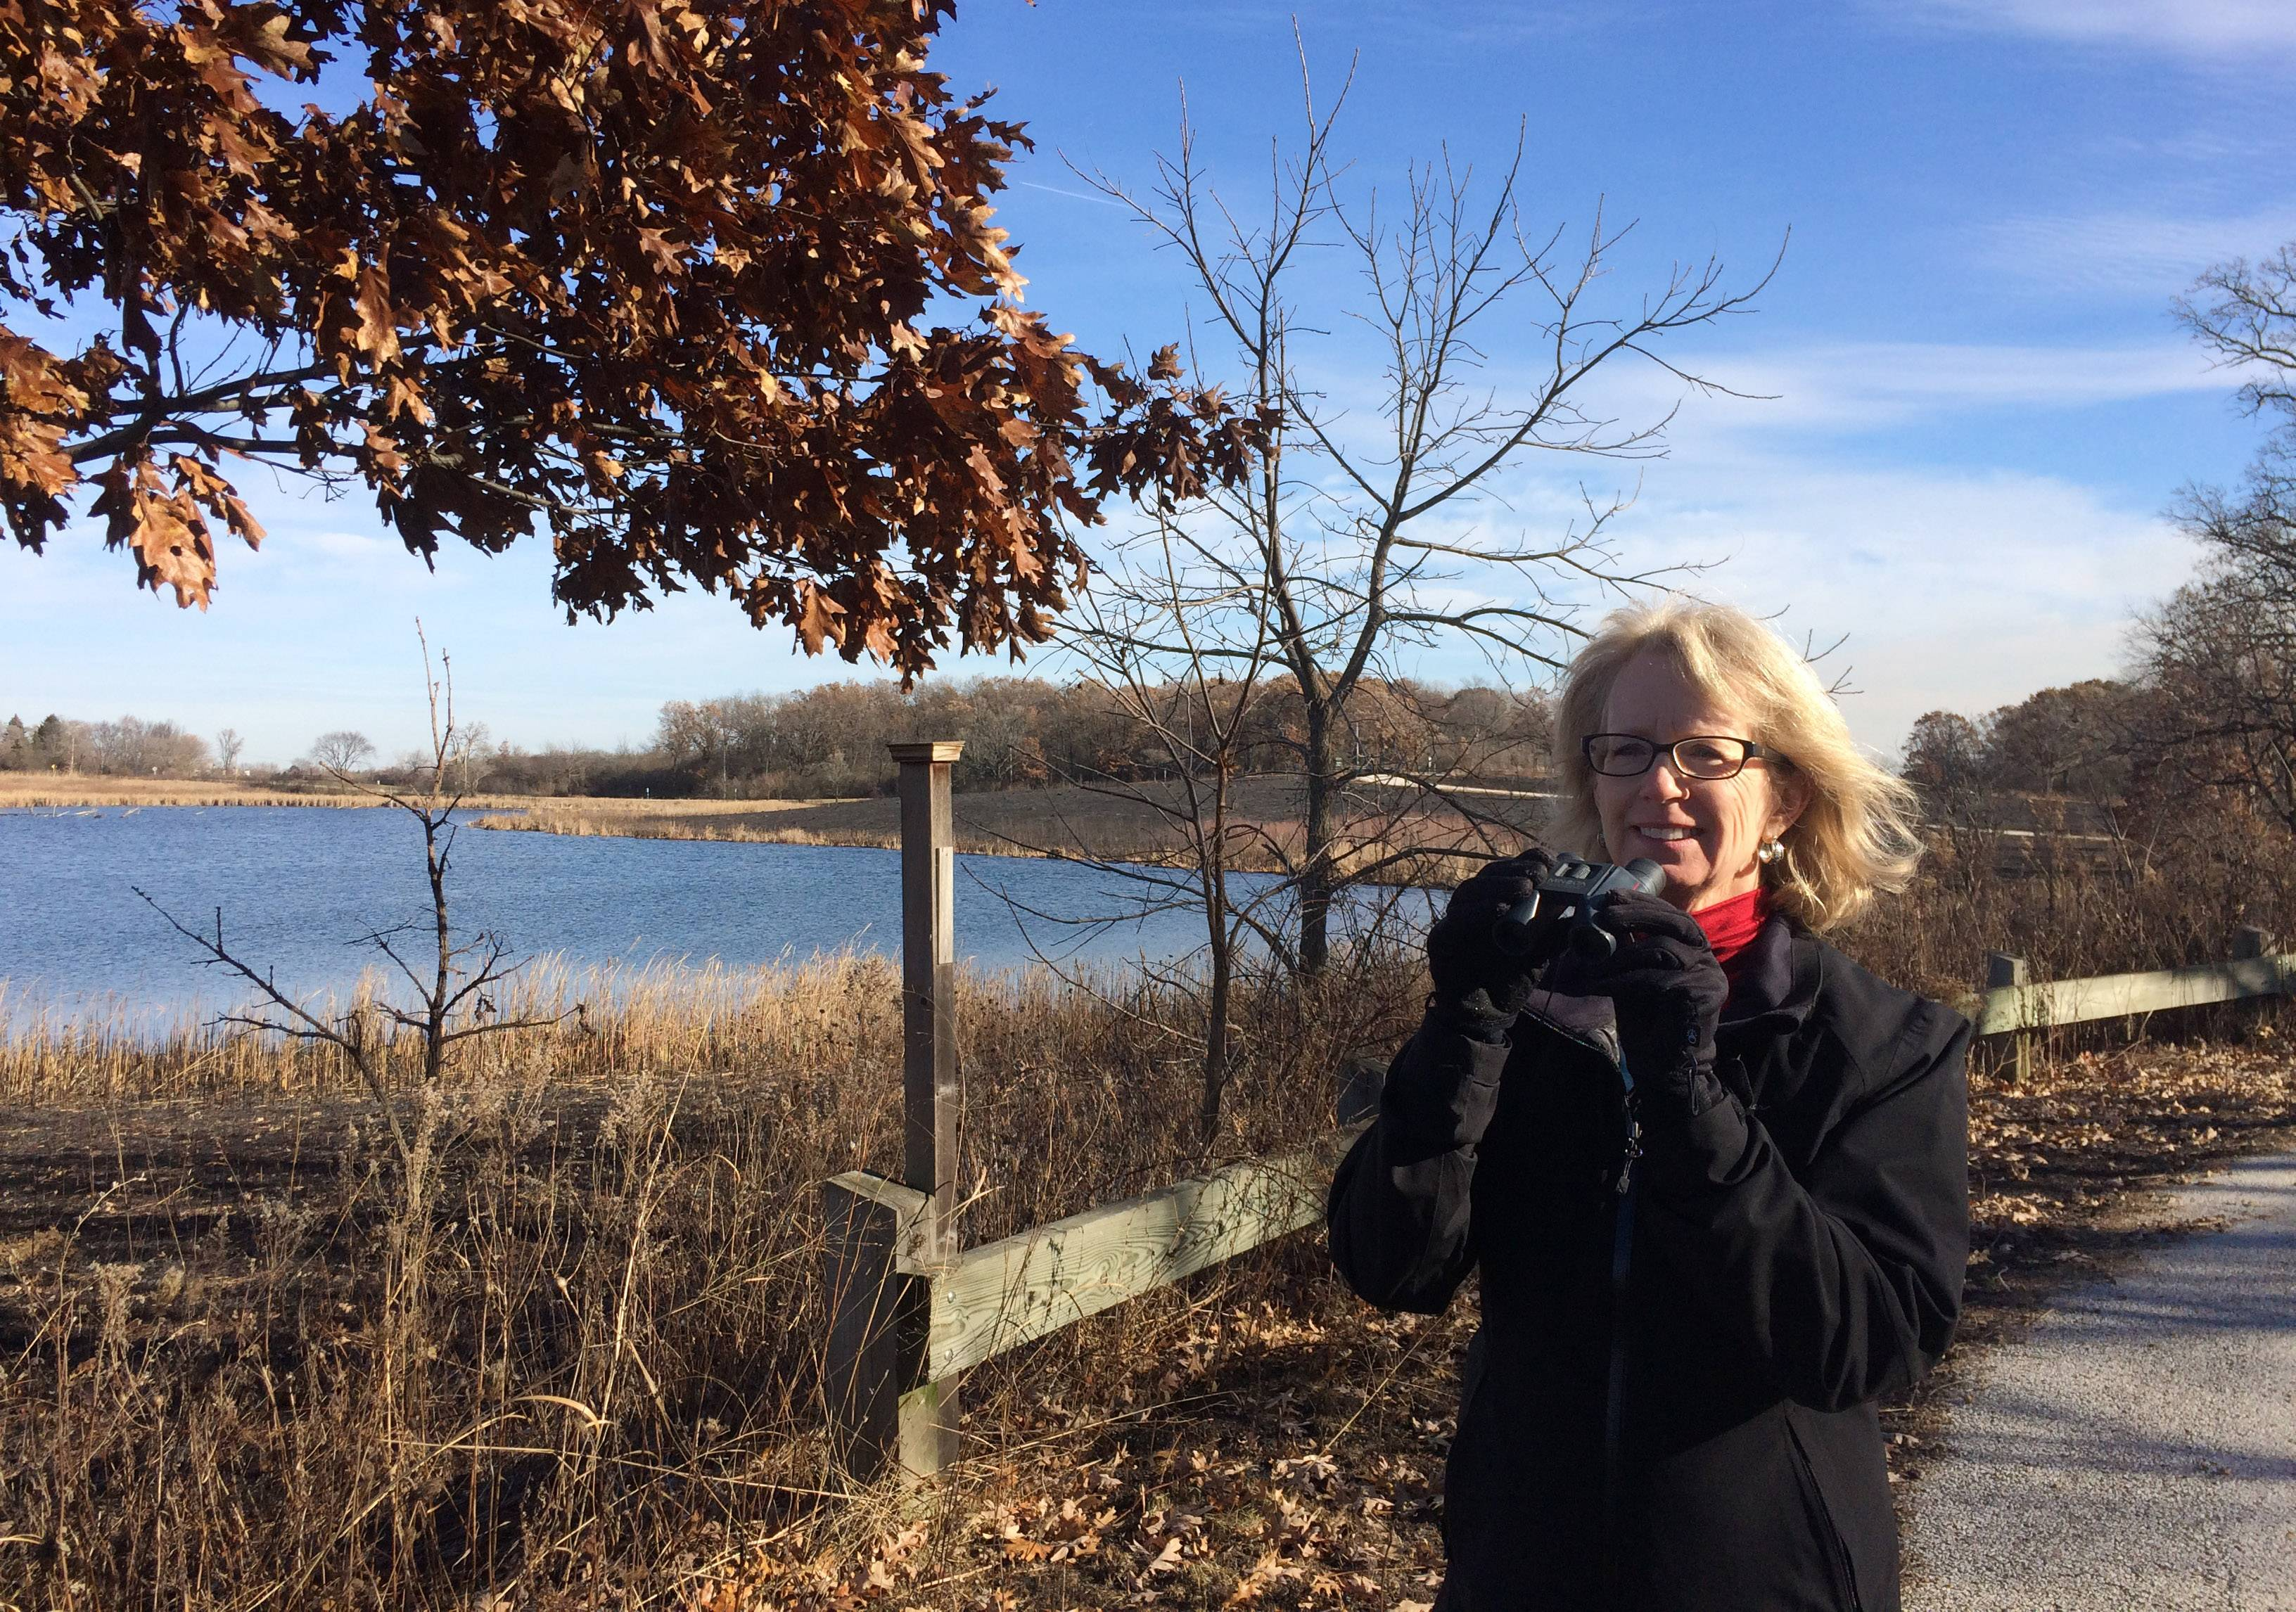 Sarah Surroz, executive director of Conserve Lake County, will become director for Lake County programs when the organization merges with Openlands.